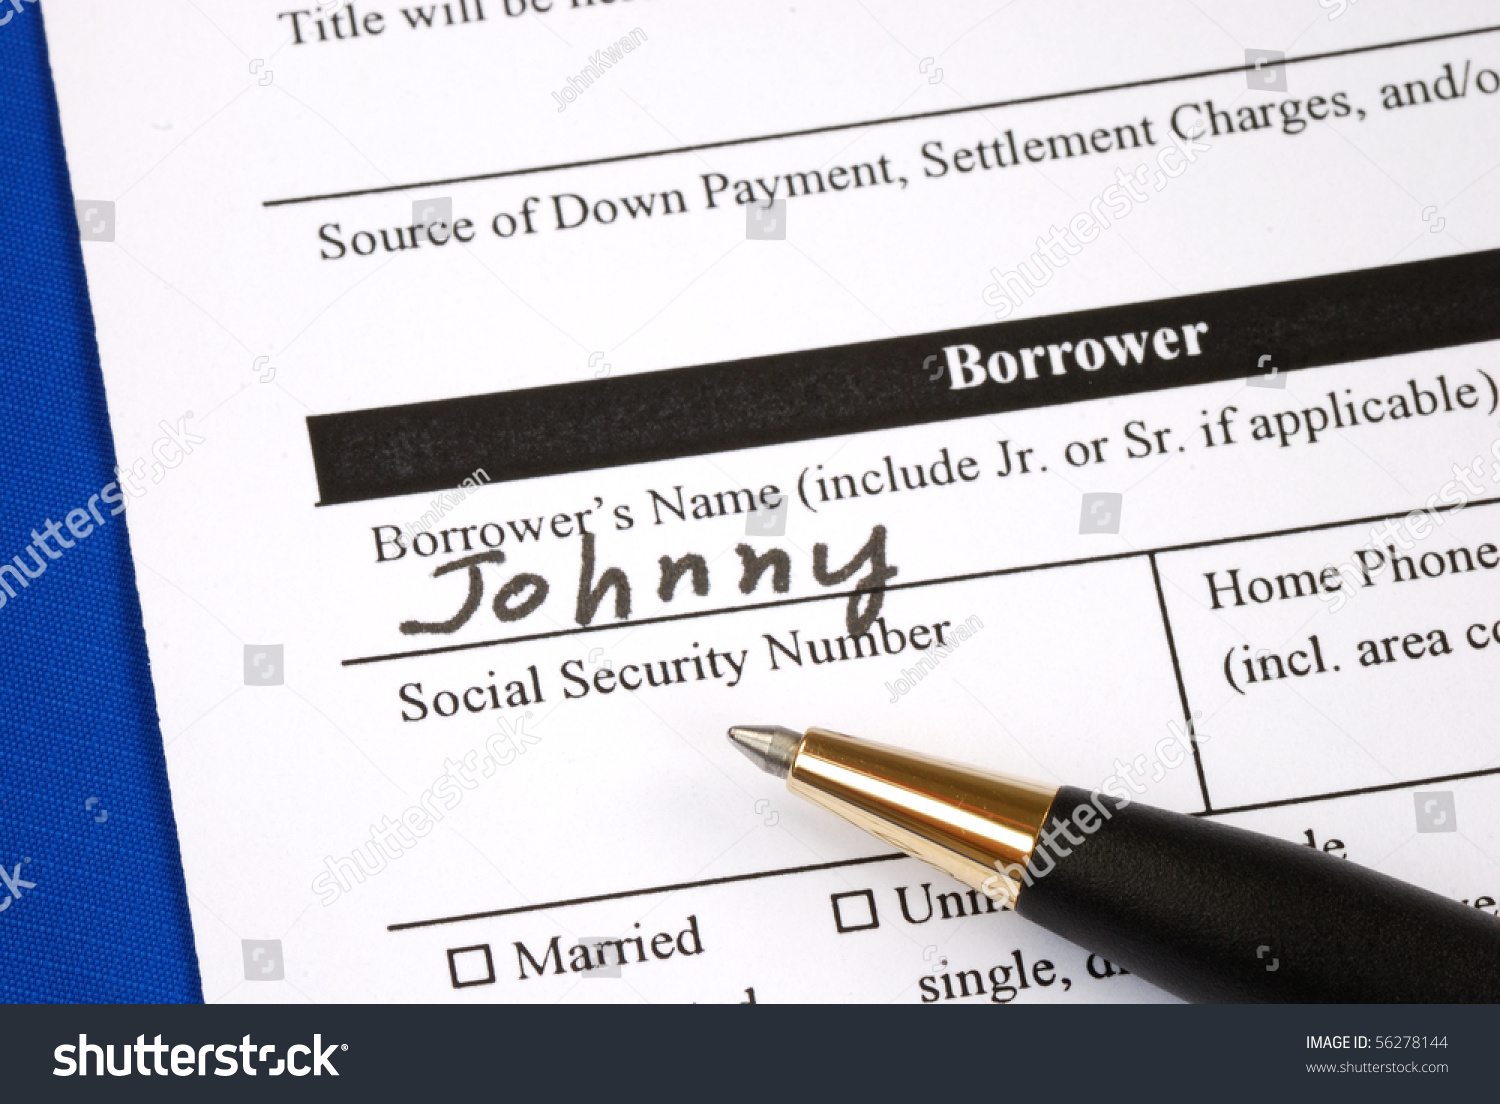 fill out the home mortgage application form stock photo  fill out the home mortgage application form preview save to a lightbox